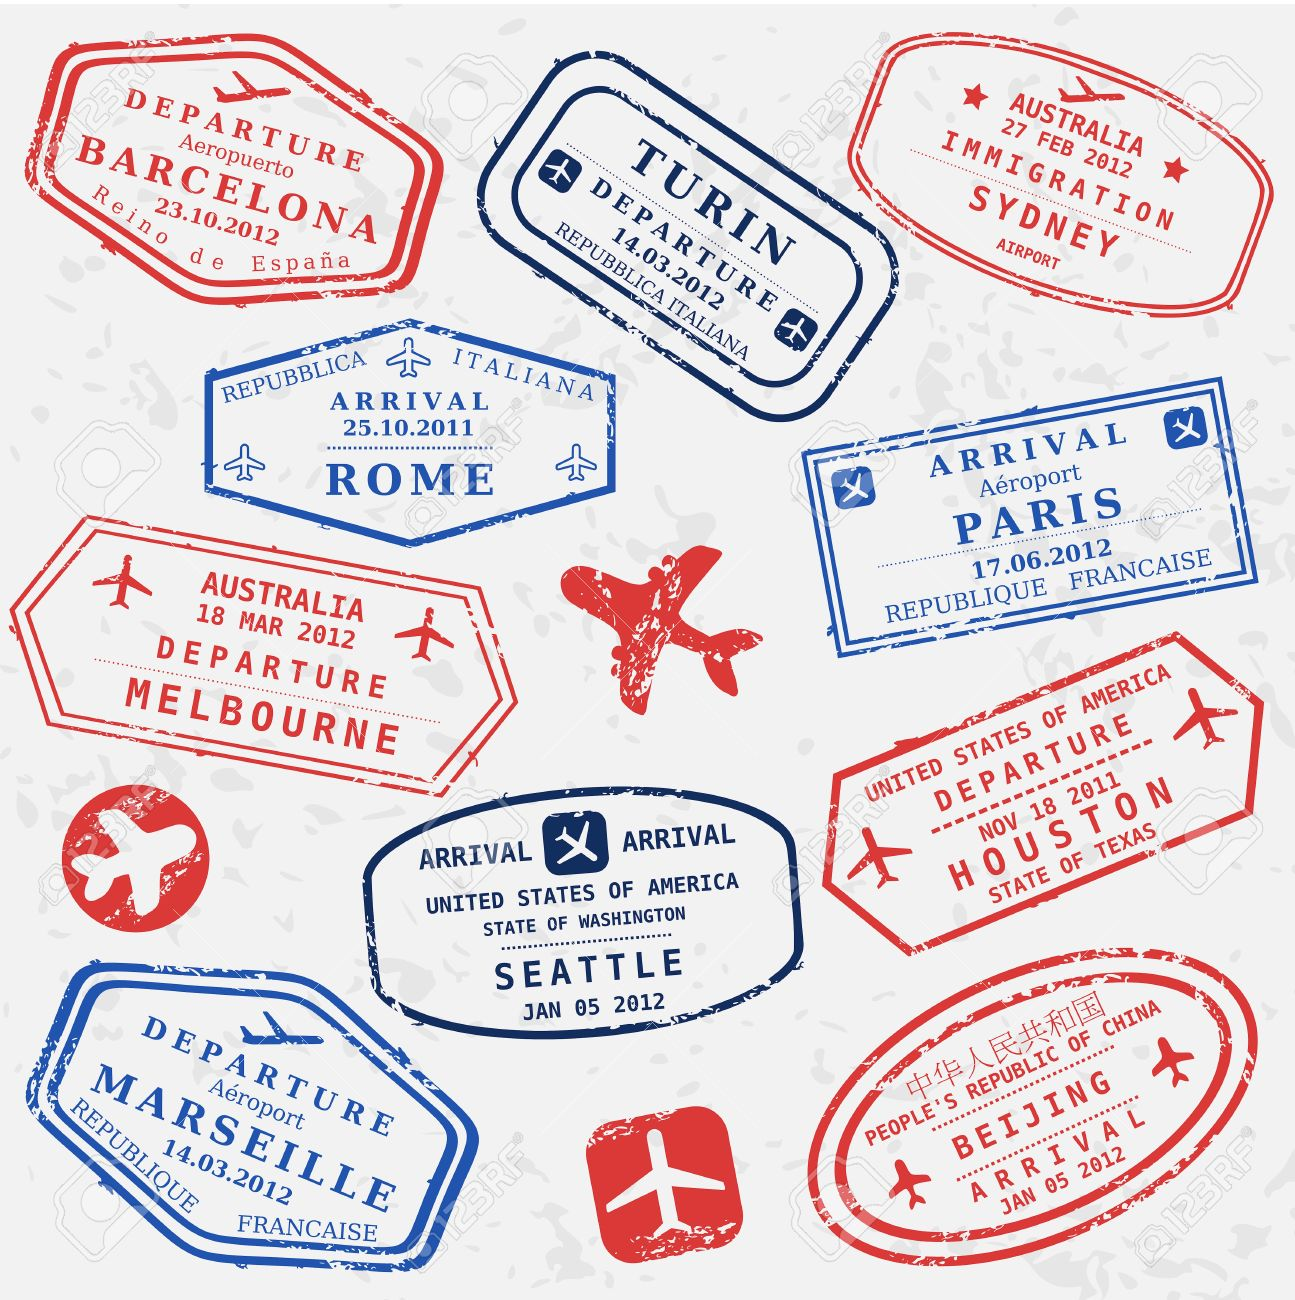 Travel stamps background. Fictitious international airport symbols. - 34231007